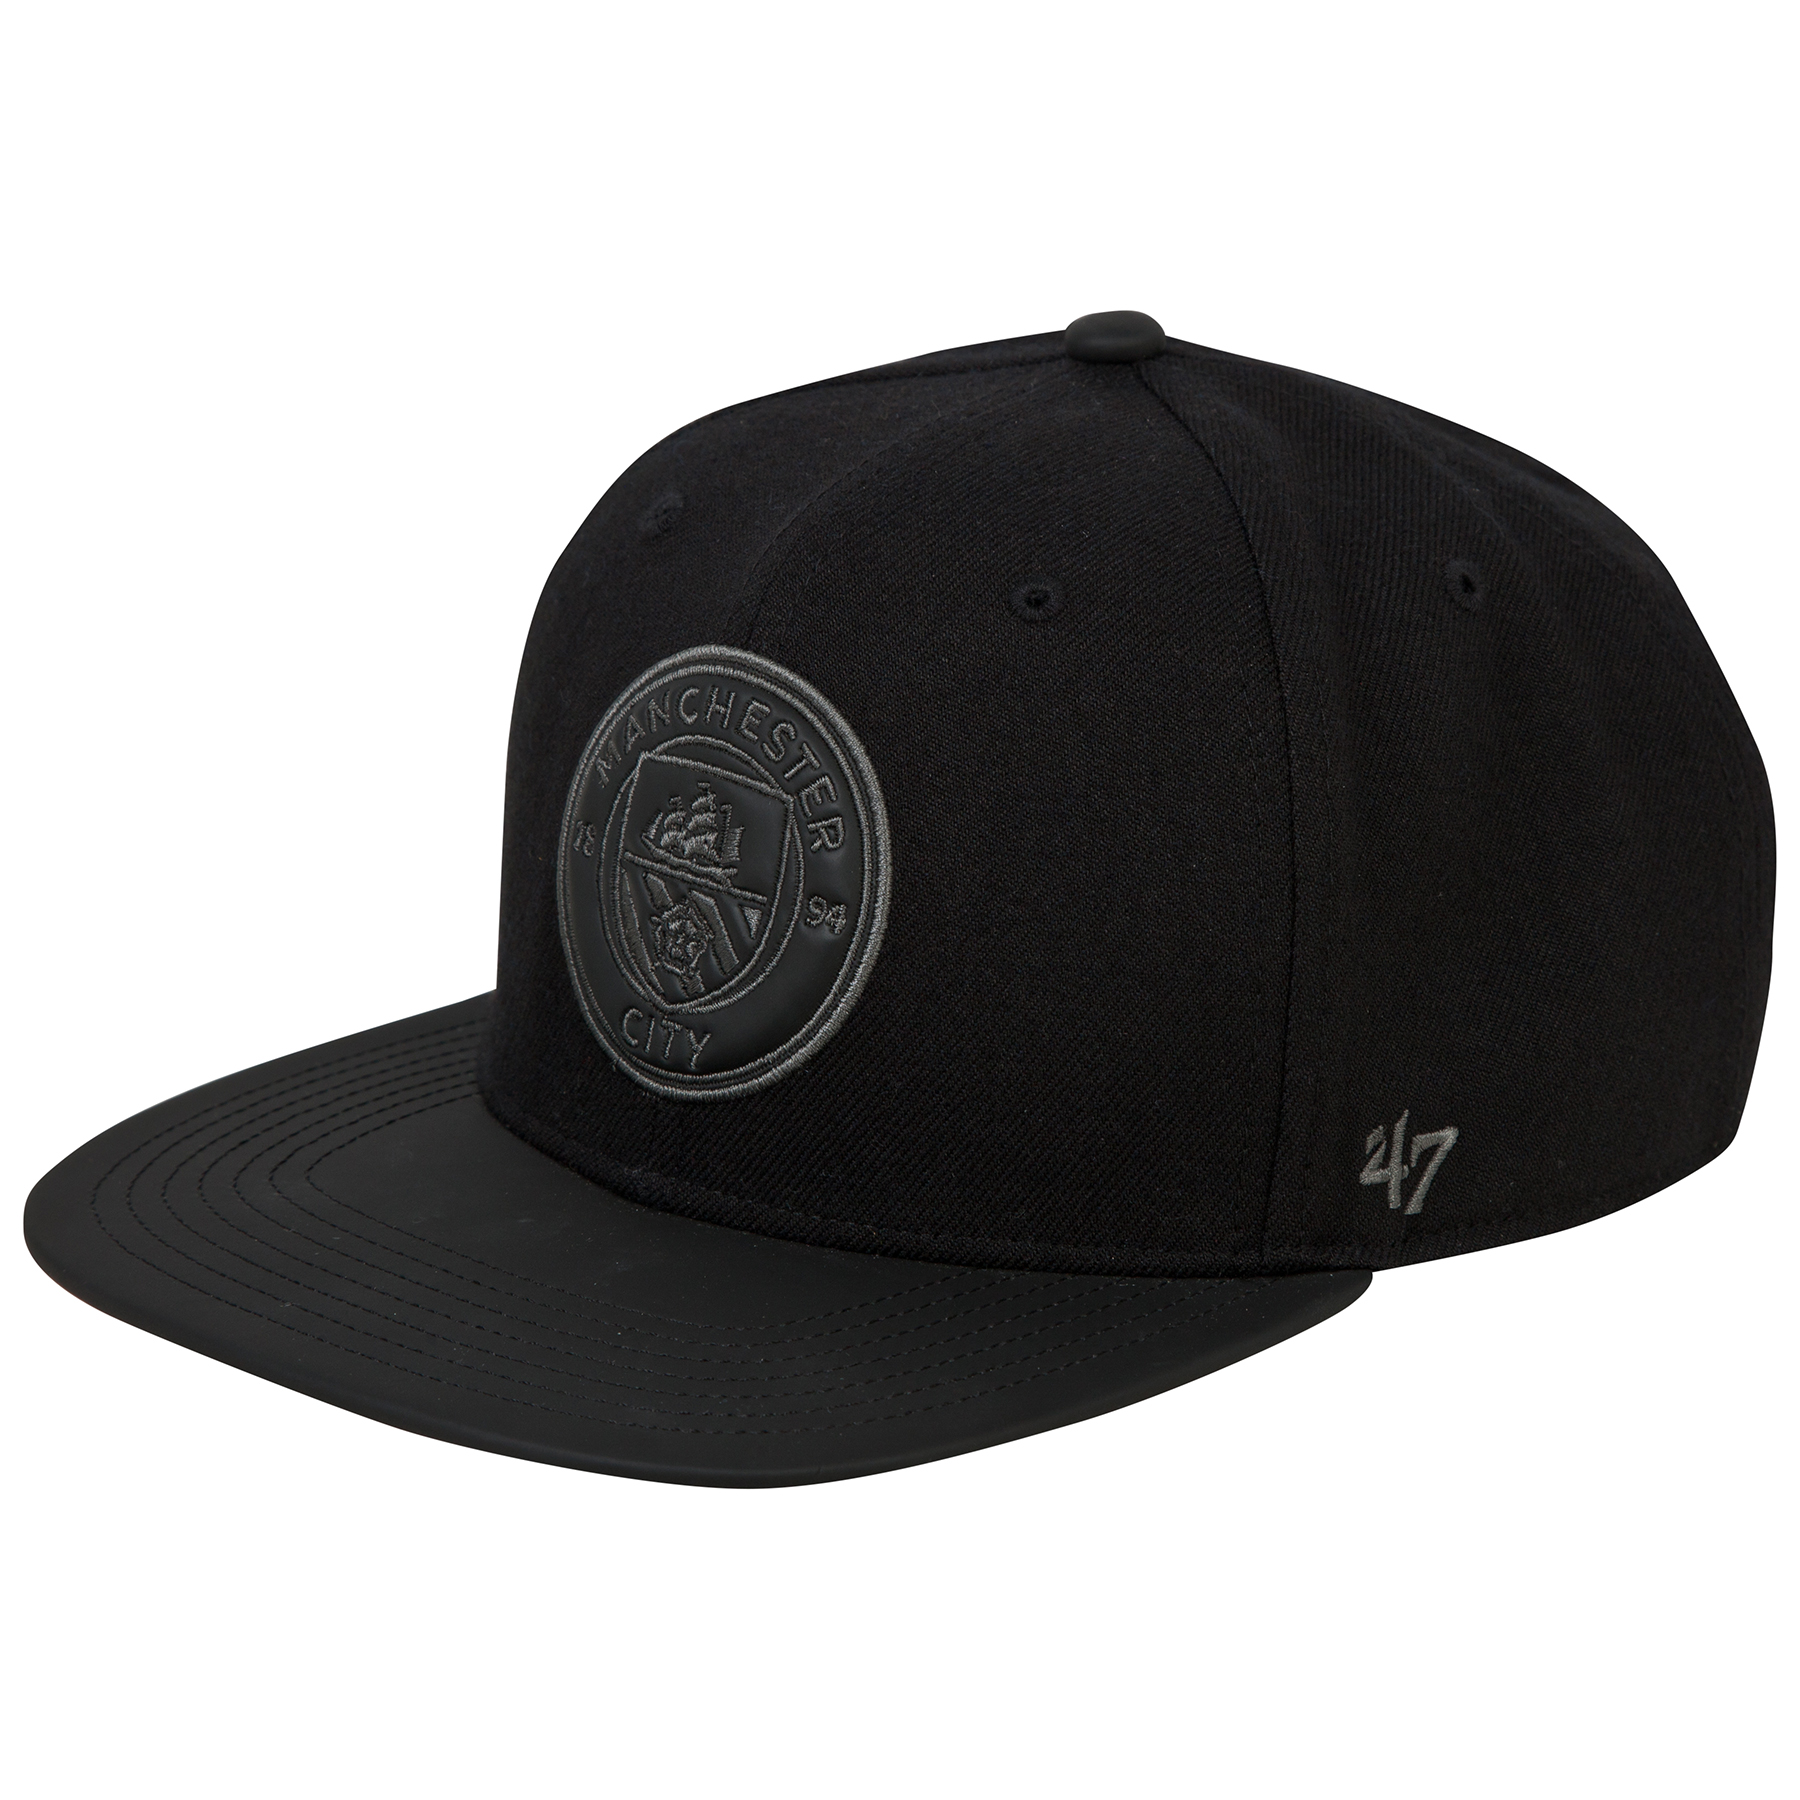 Manchester City 47 Captain Cap - Black